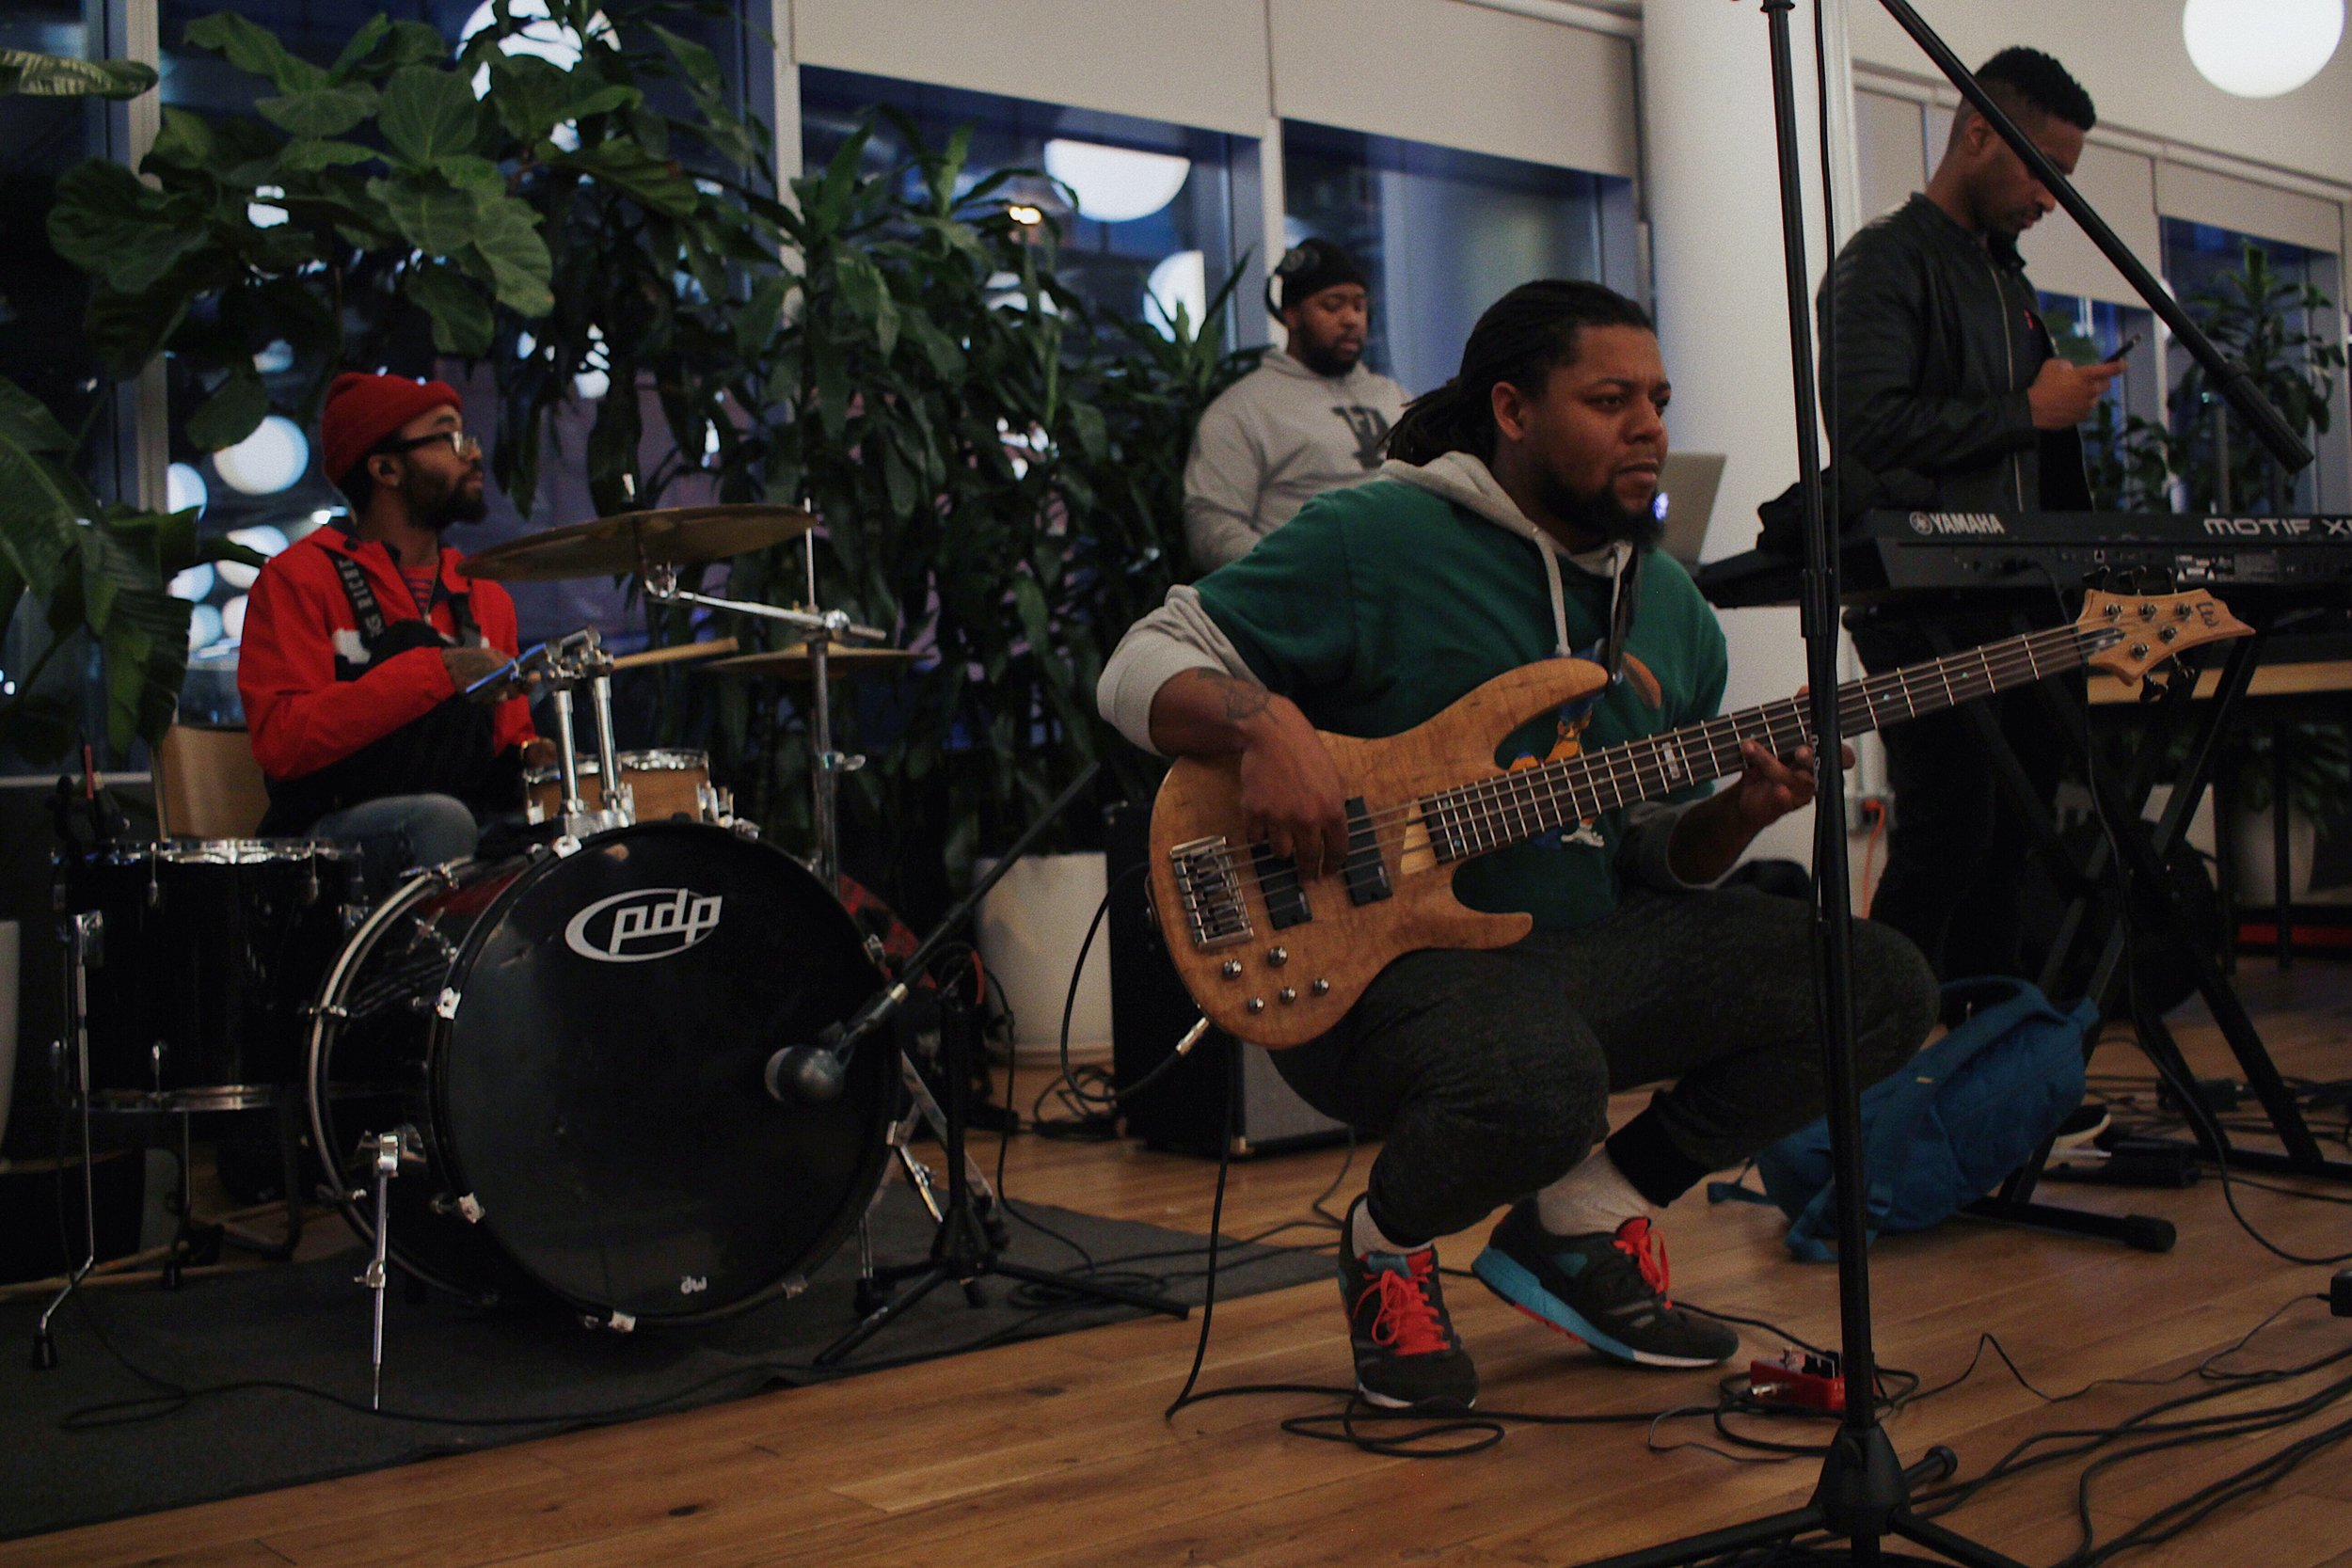 Julz Powell, Benji., and Slim Tha DJ warming up before their SoFar Sounds D.C. set. | Photo by Alex Young